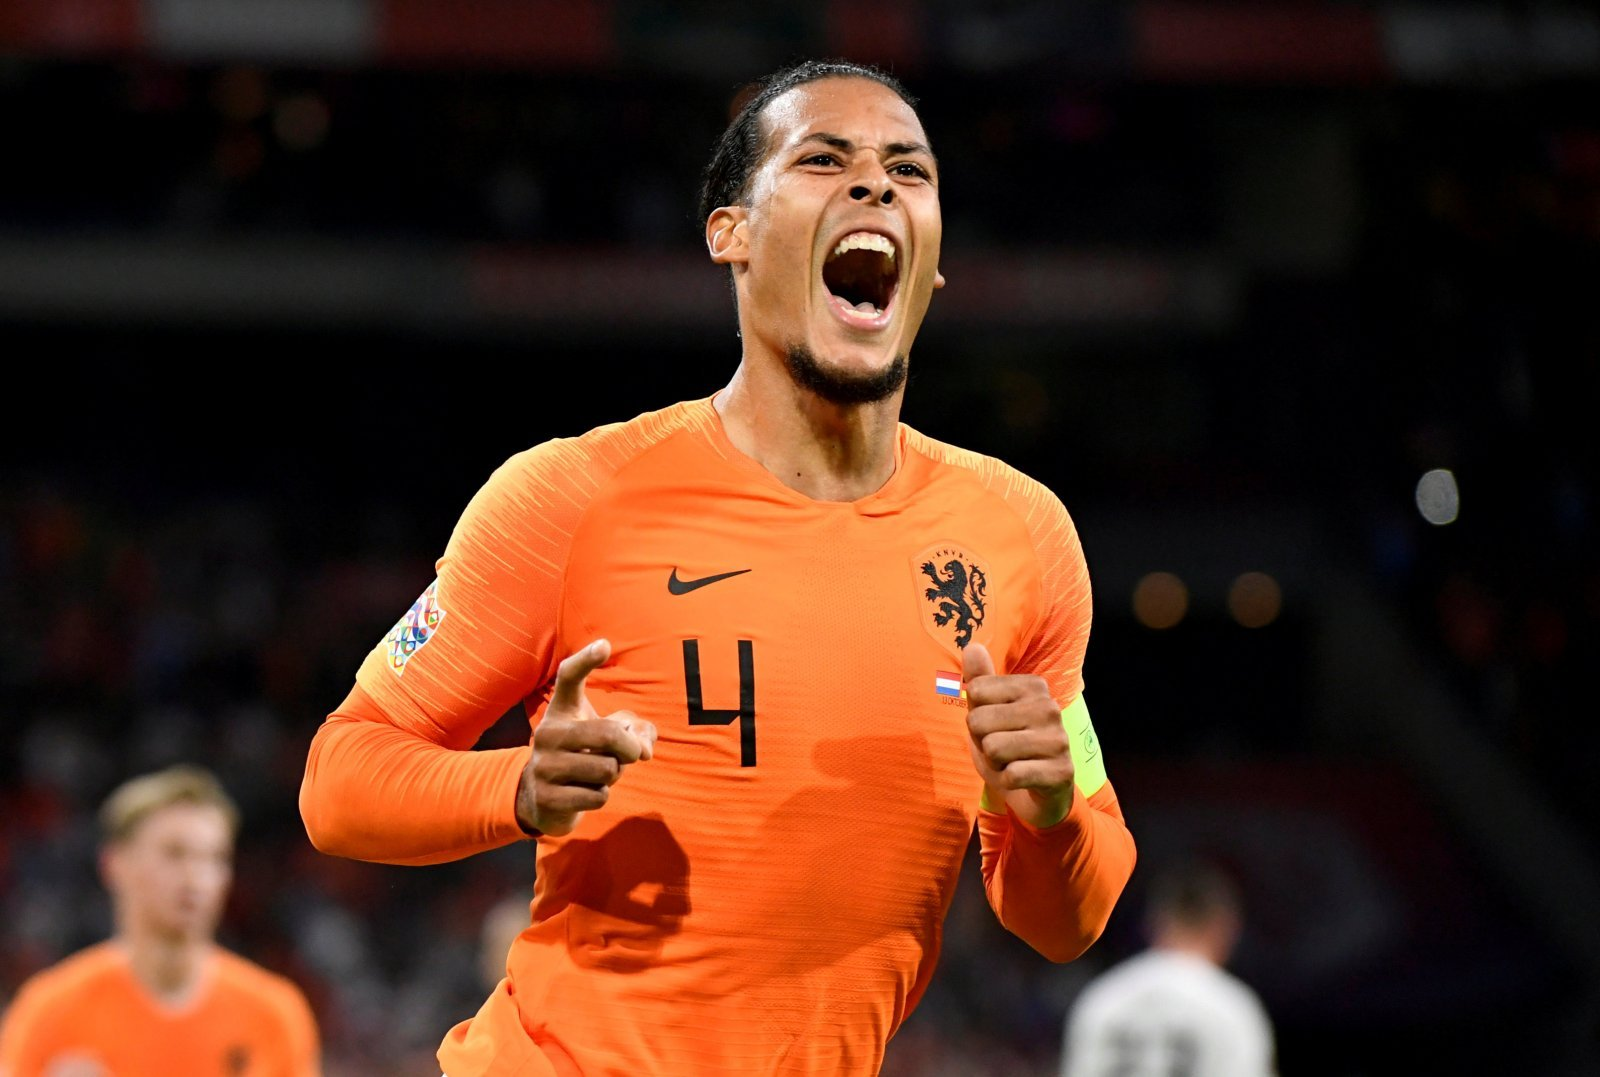 Liverpool fans take to Twitter to demand Virgil van Dijk is given the armband